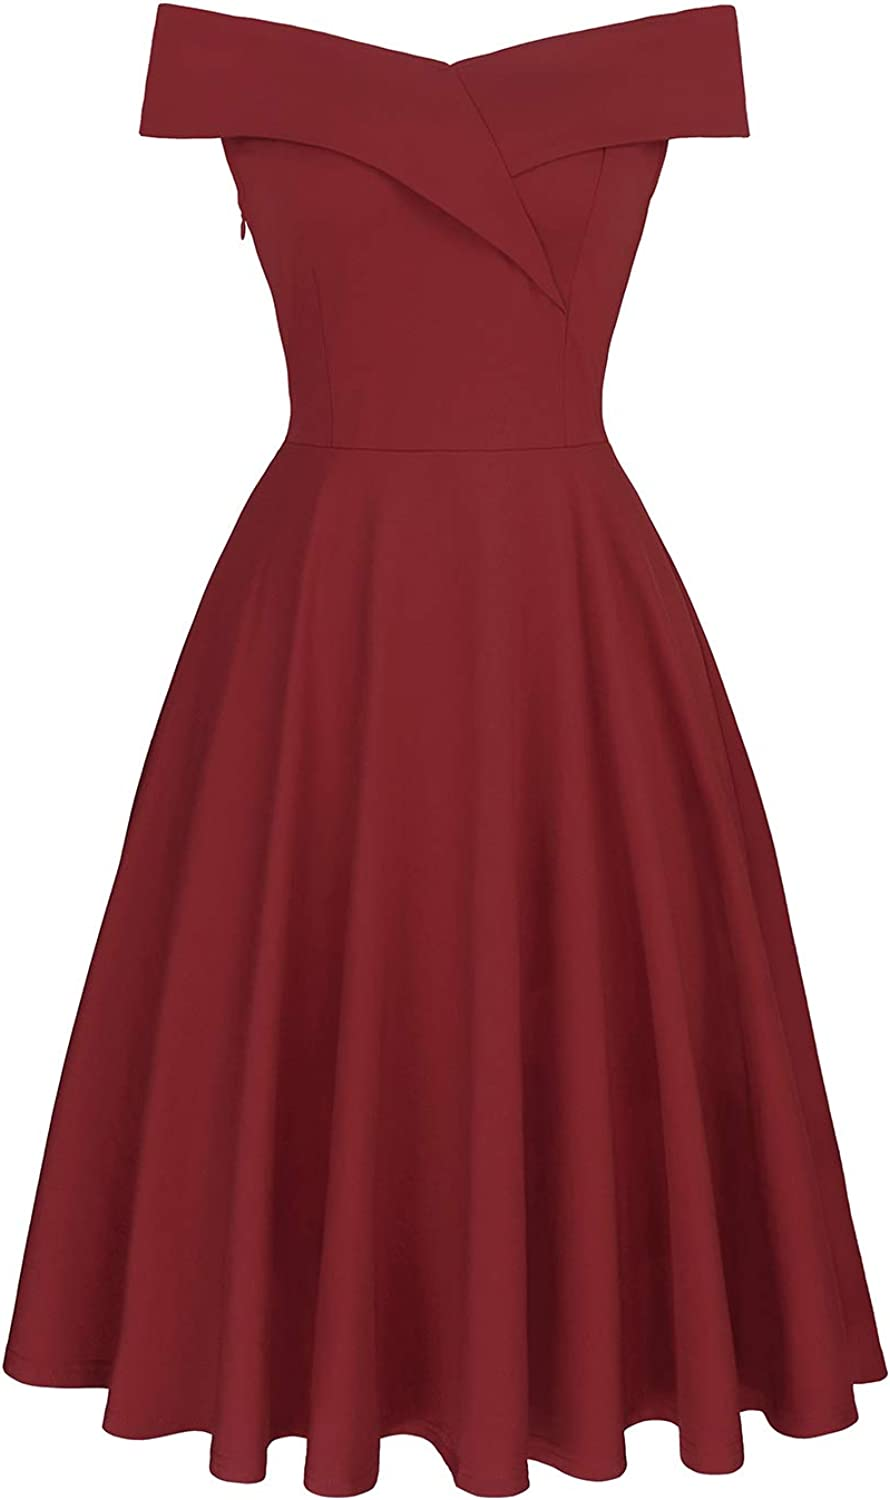 Meiyitong Clothing Women's Summer Vintage Off The Shoulder Dresses Party Cocktail Evening Dresses